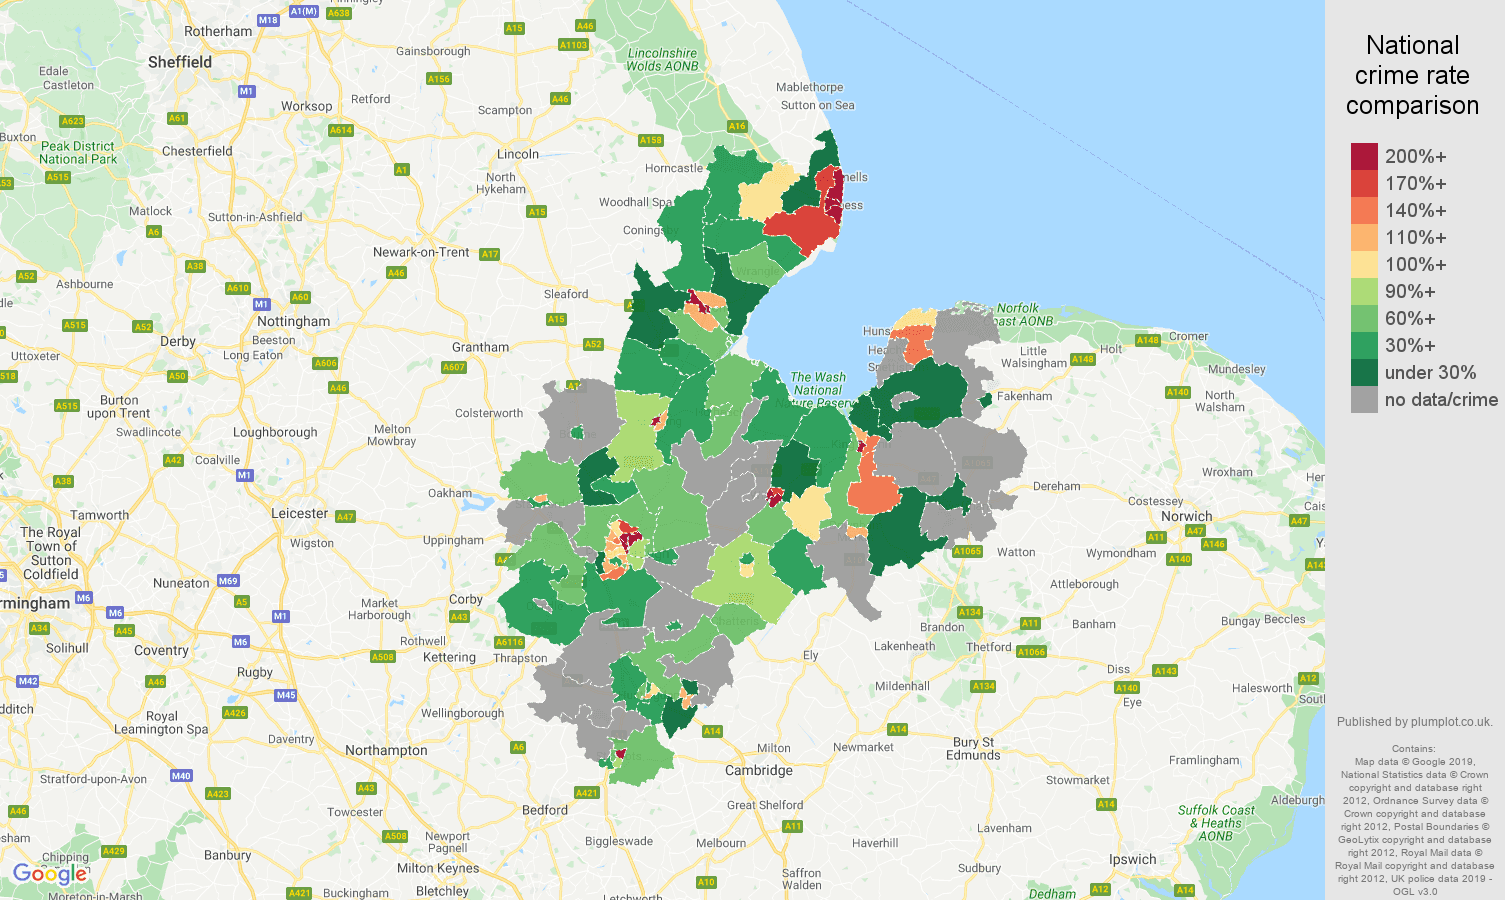 Peterborough possession of weapons crime rate comparison map